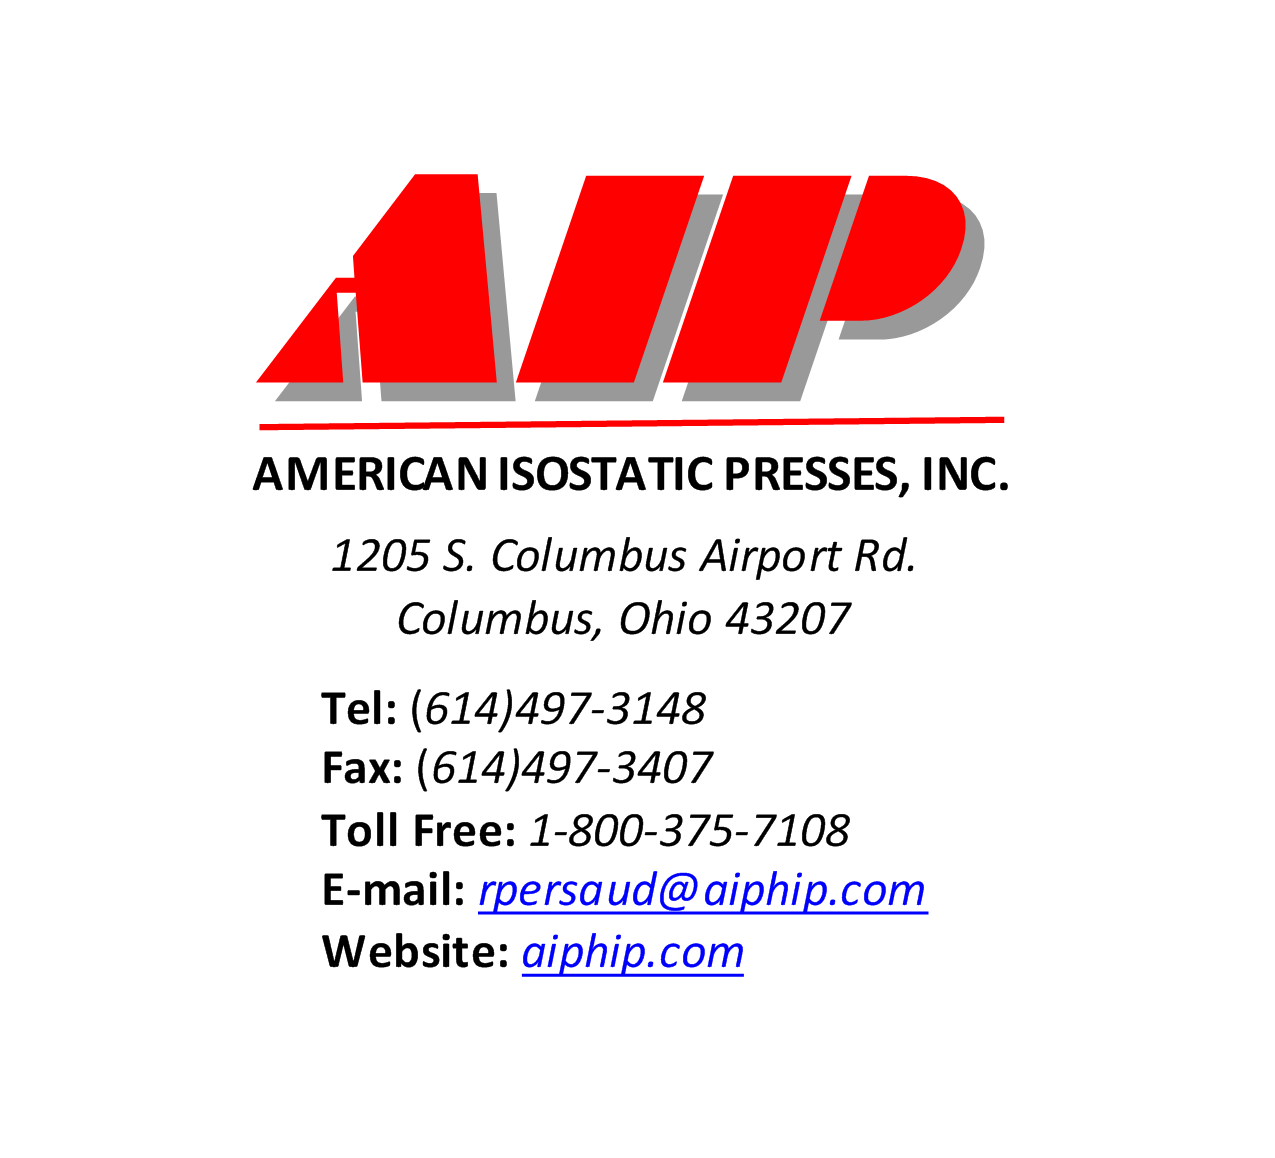 aip-logo-with-contact